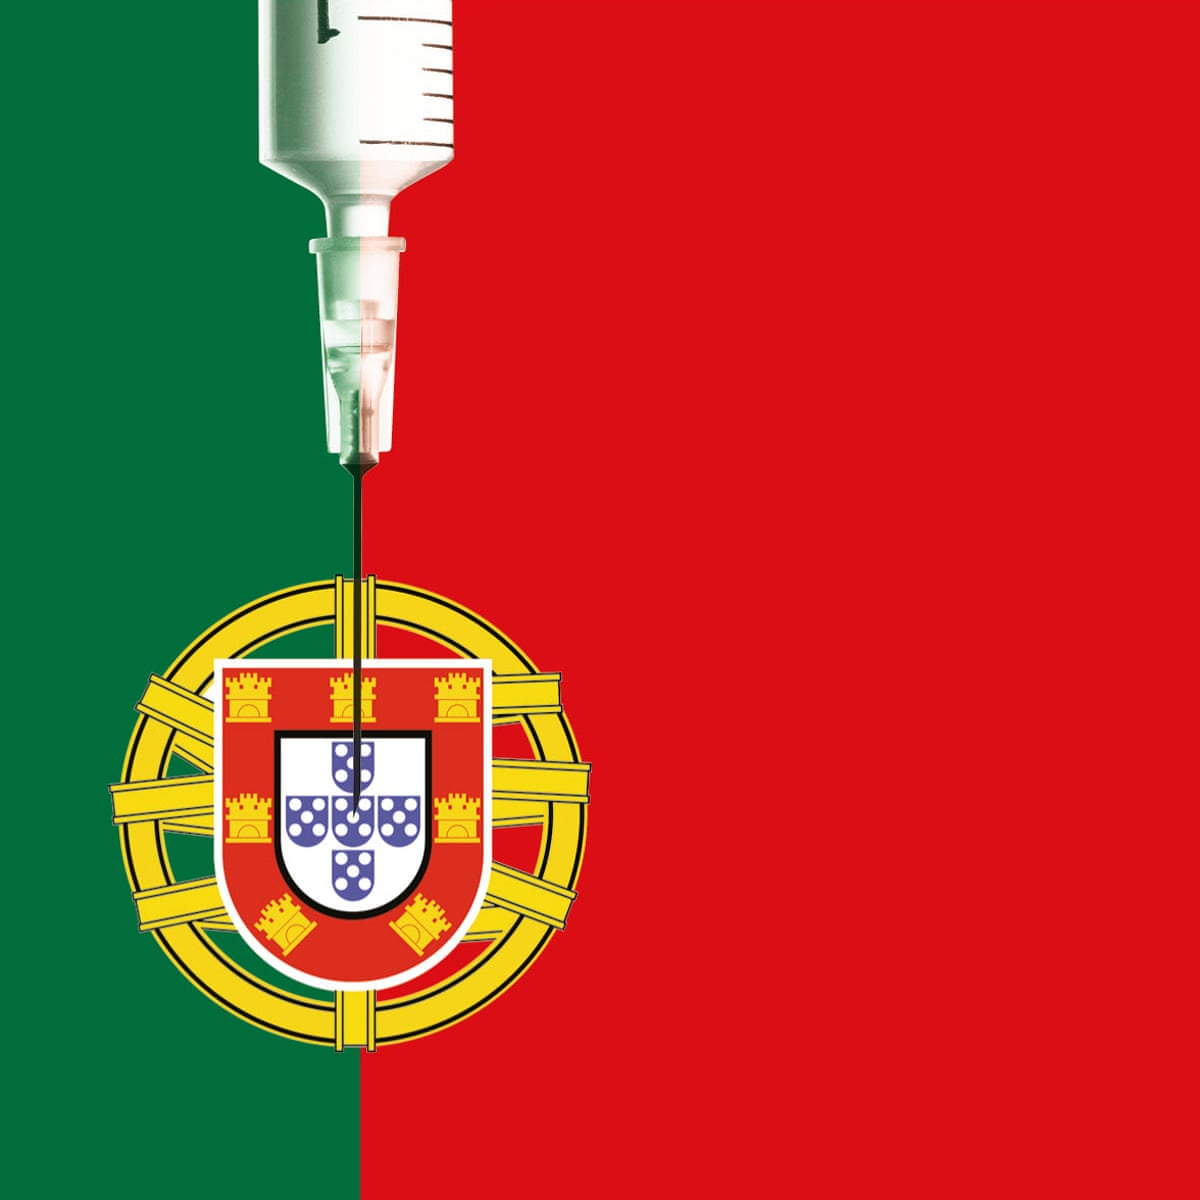 Portugal S Radical Drugs Policy Is Working Why Hasn T The World Copied It Portugal The Guardian